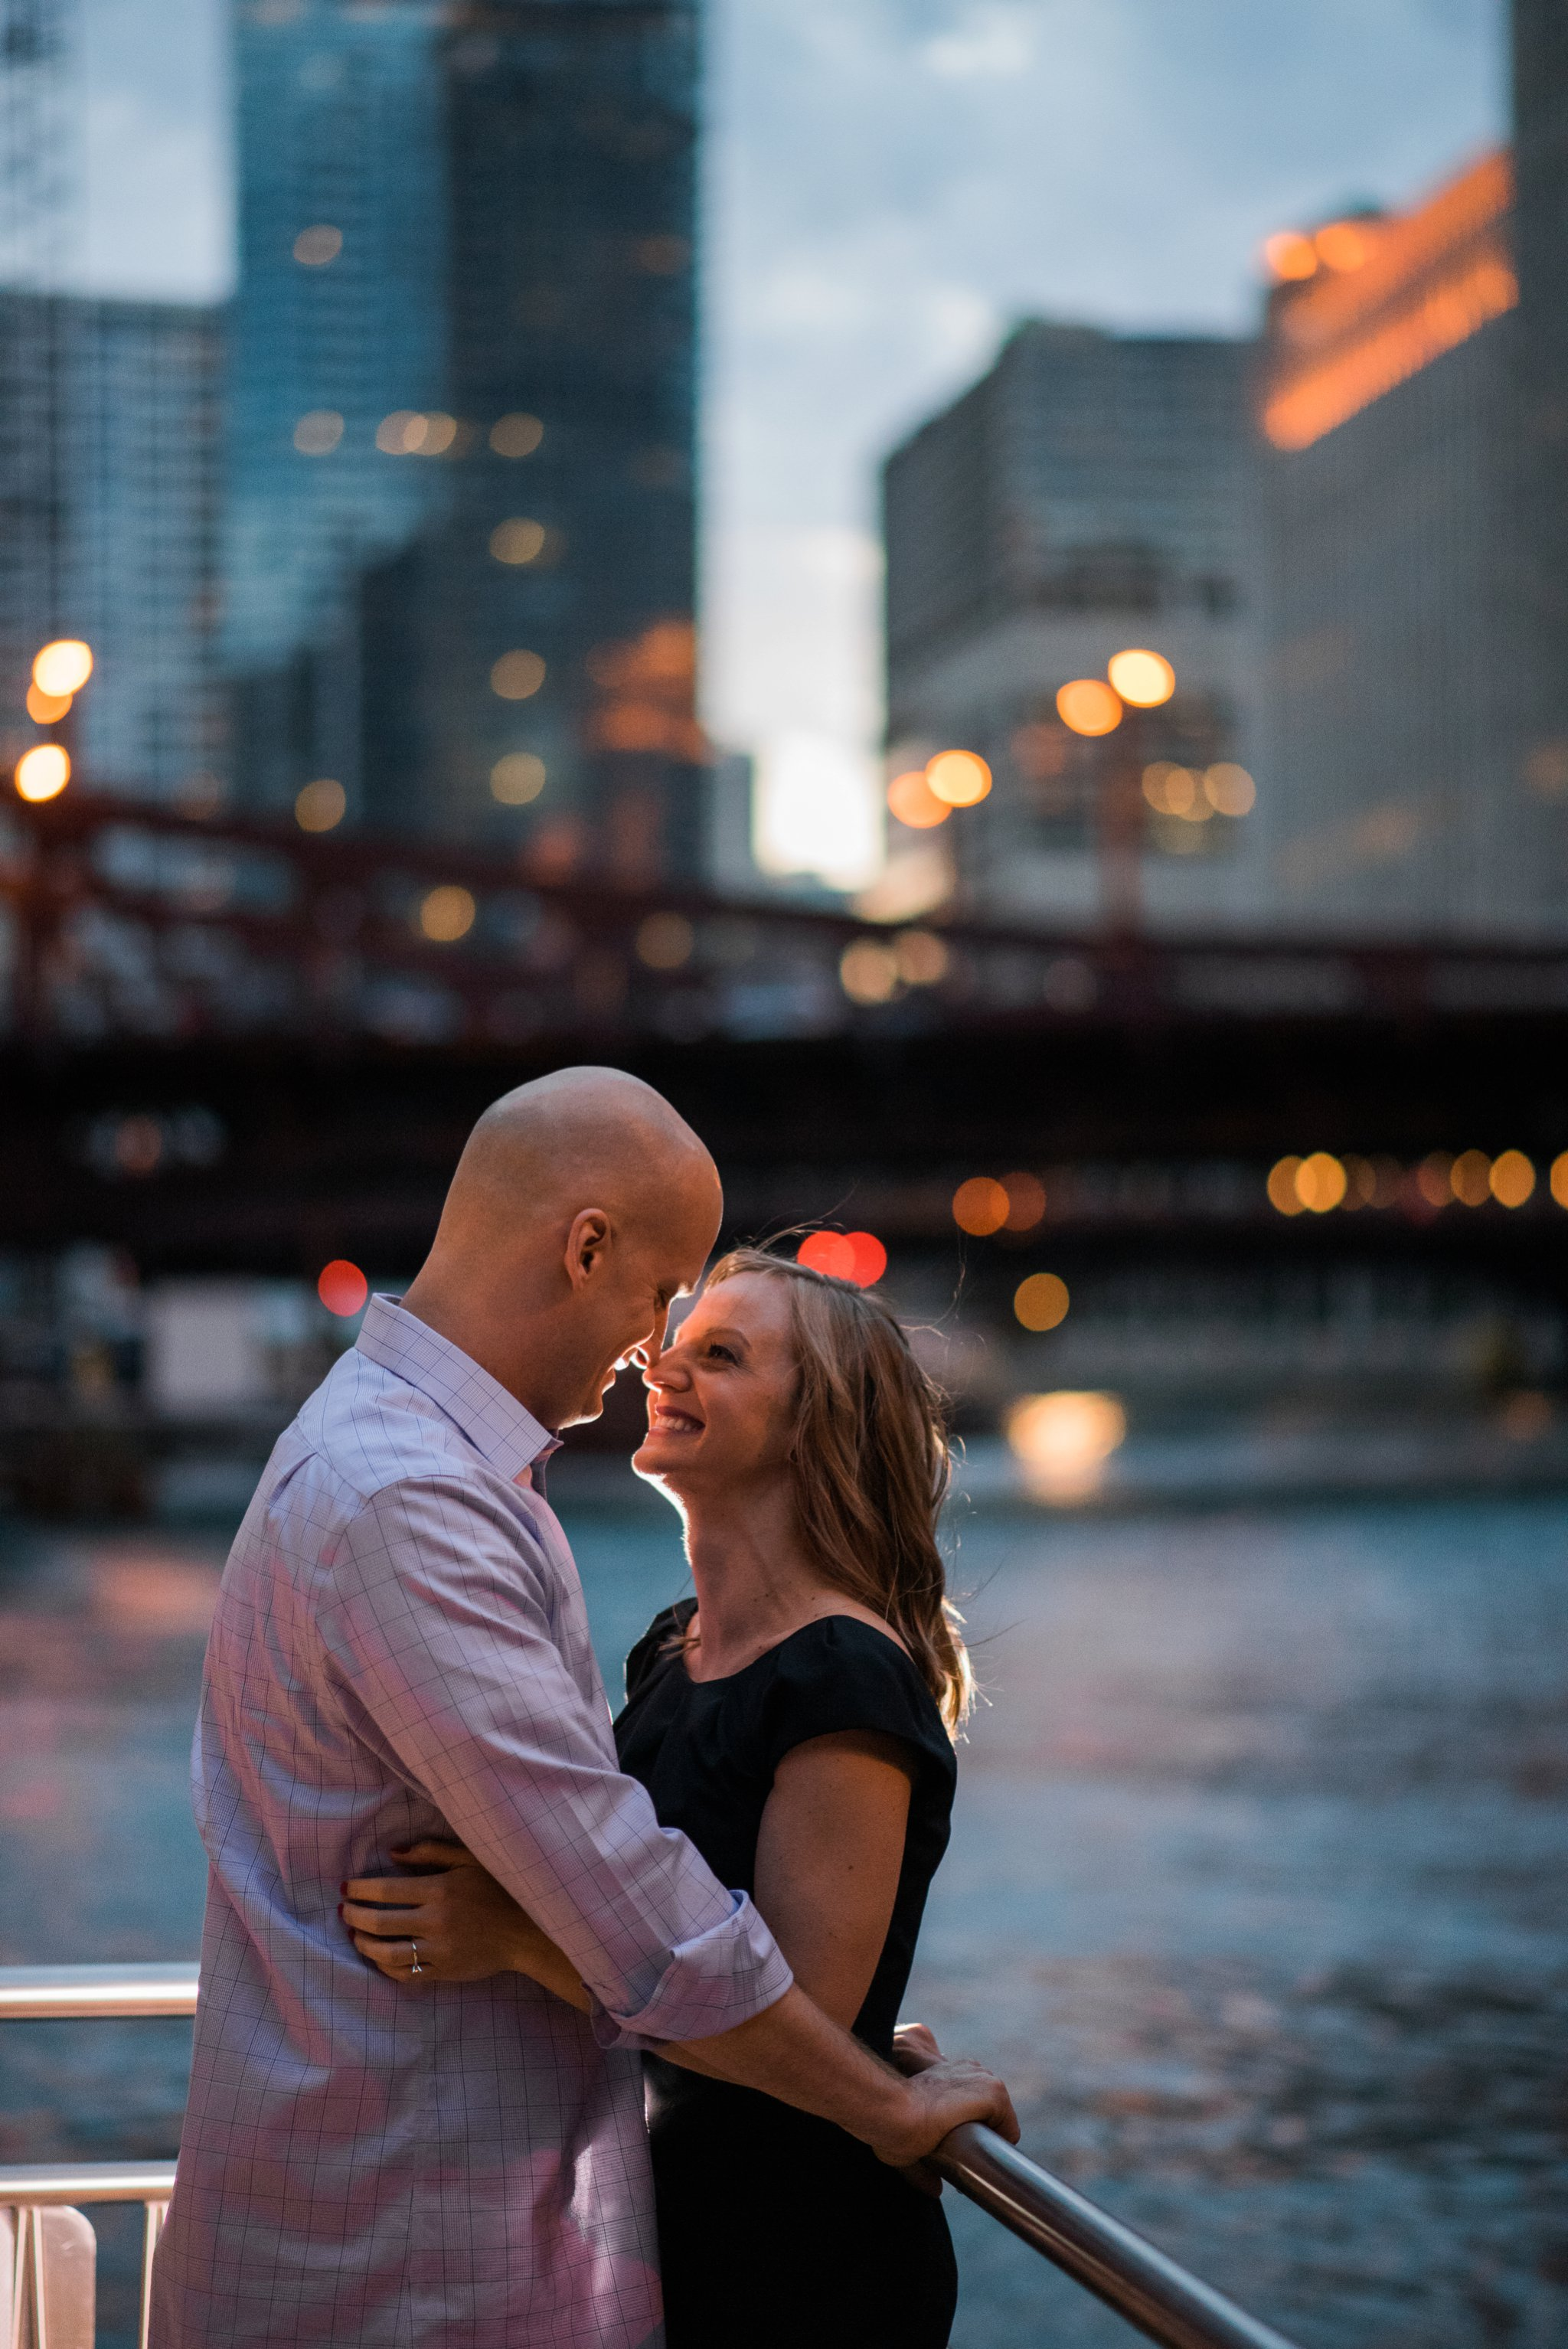 Downtown-Chicago-Loop-Wedding-Photography-095.jpg